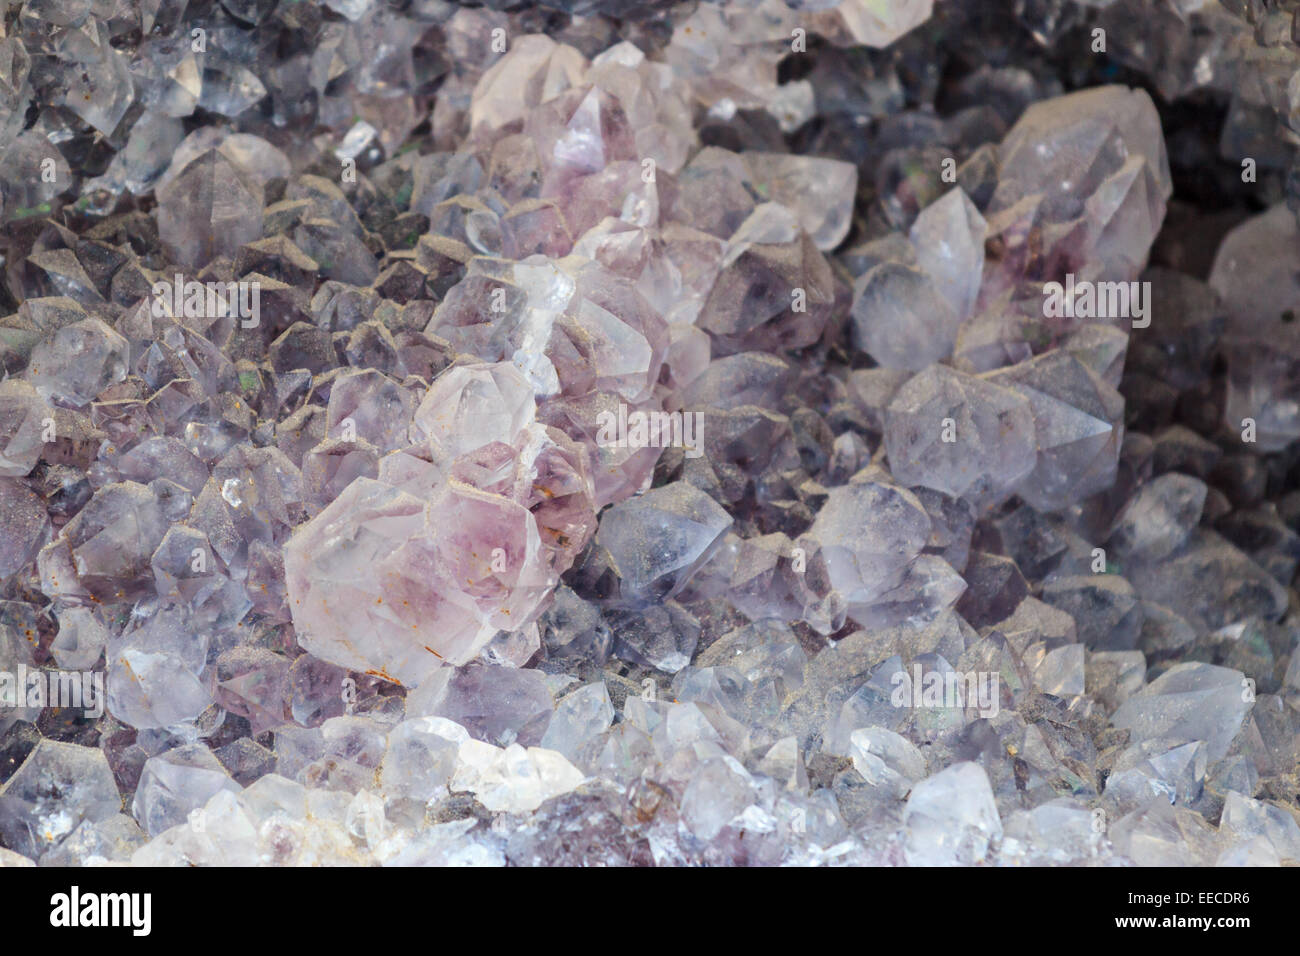 Detail of purple shimmering crystal - Stock Image